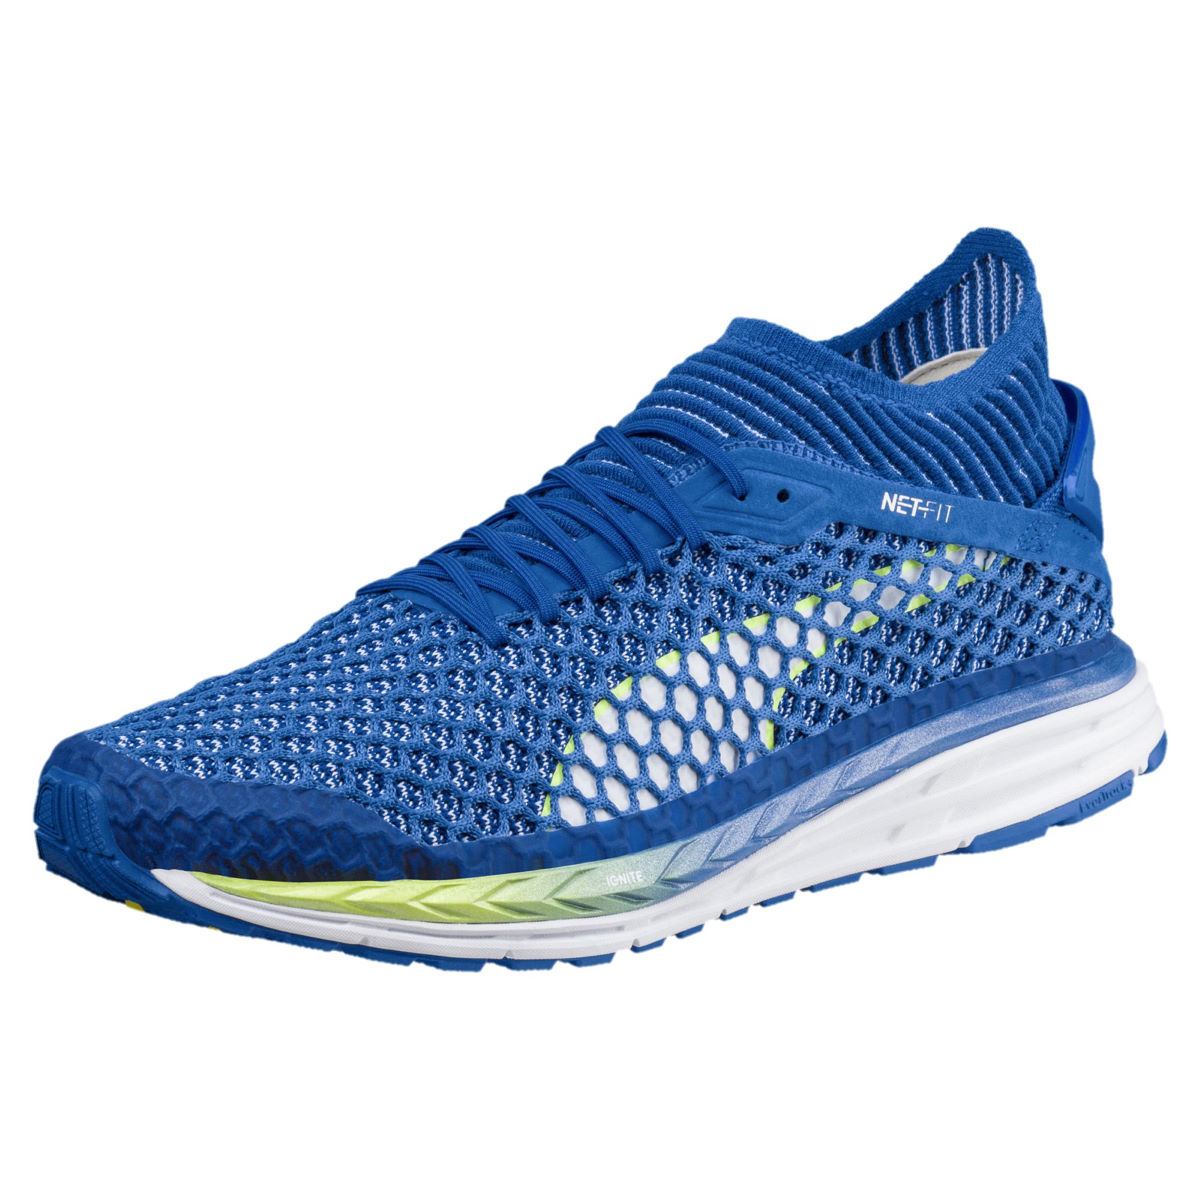 Chaussures Puma Speed Ignite Netfit 2 (bleues) - UK 10